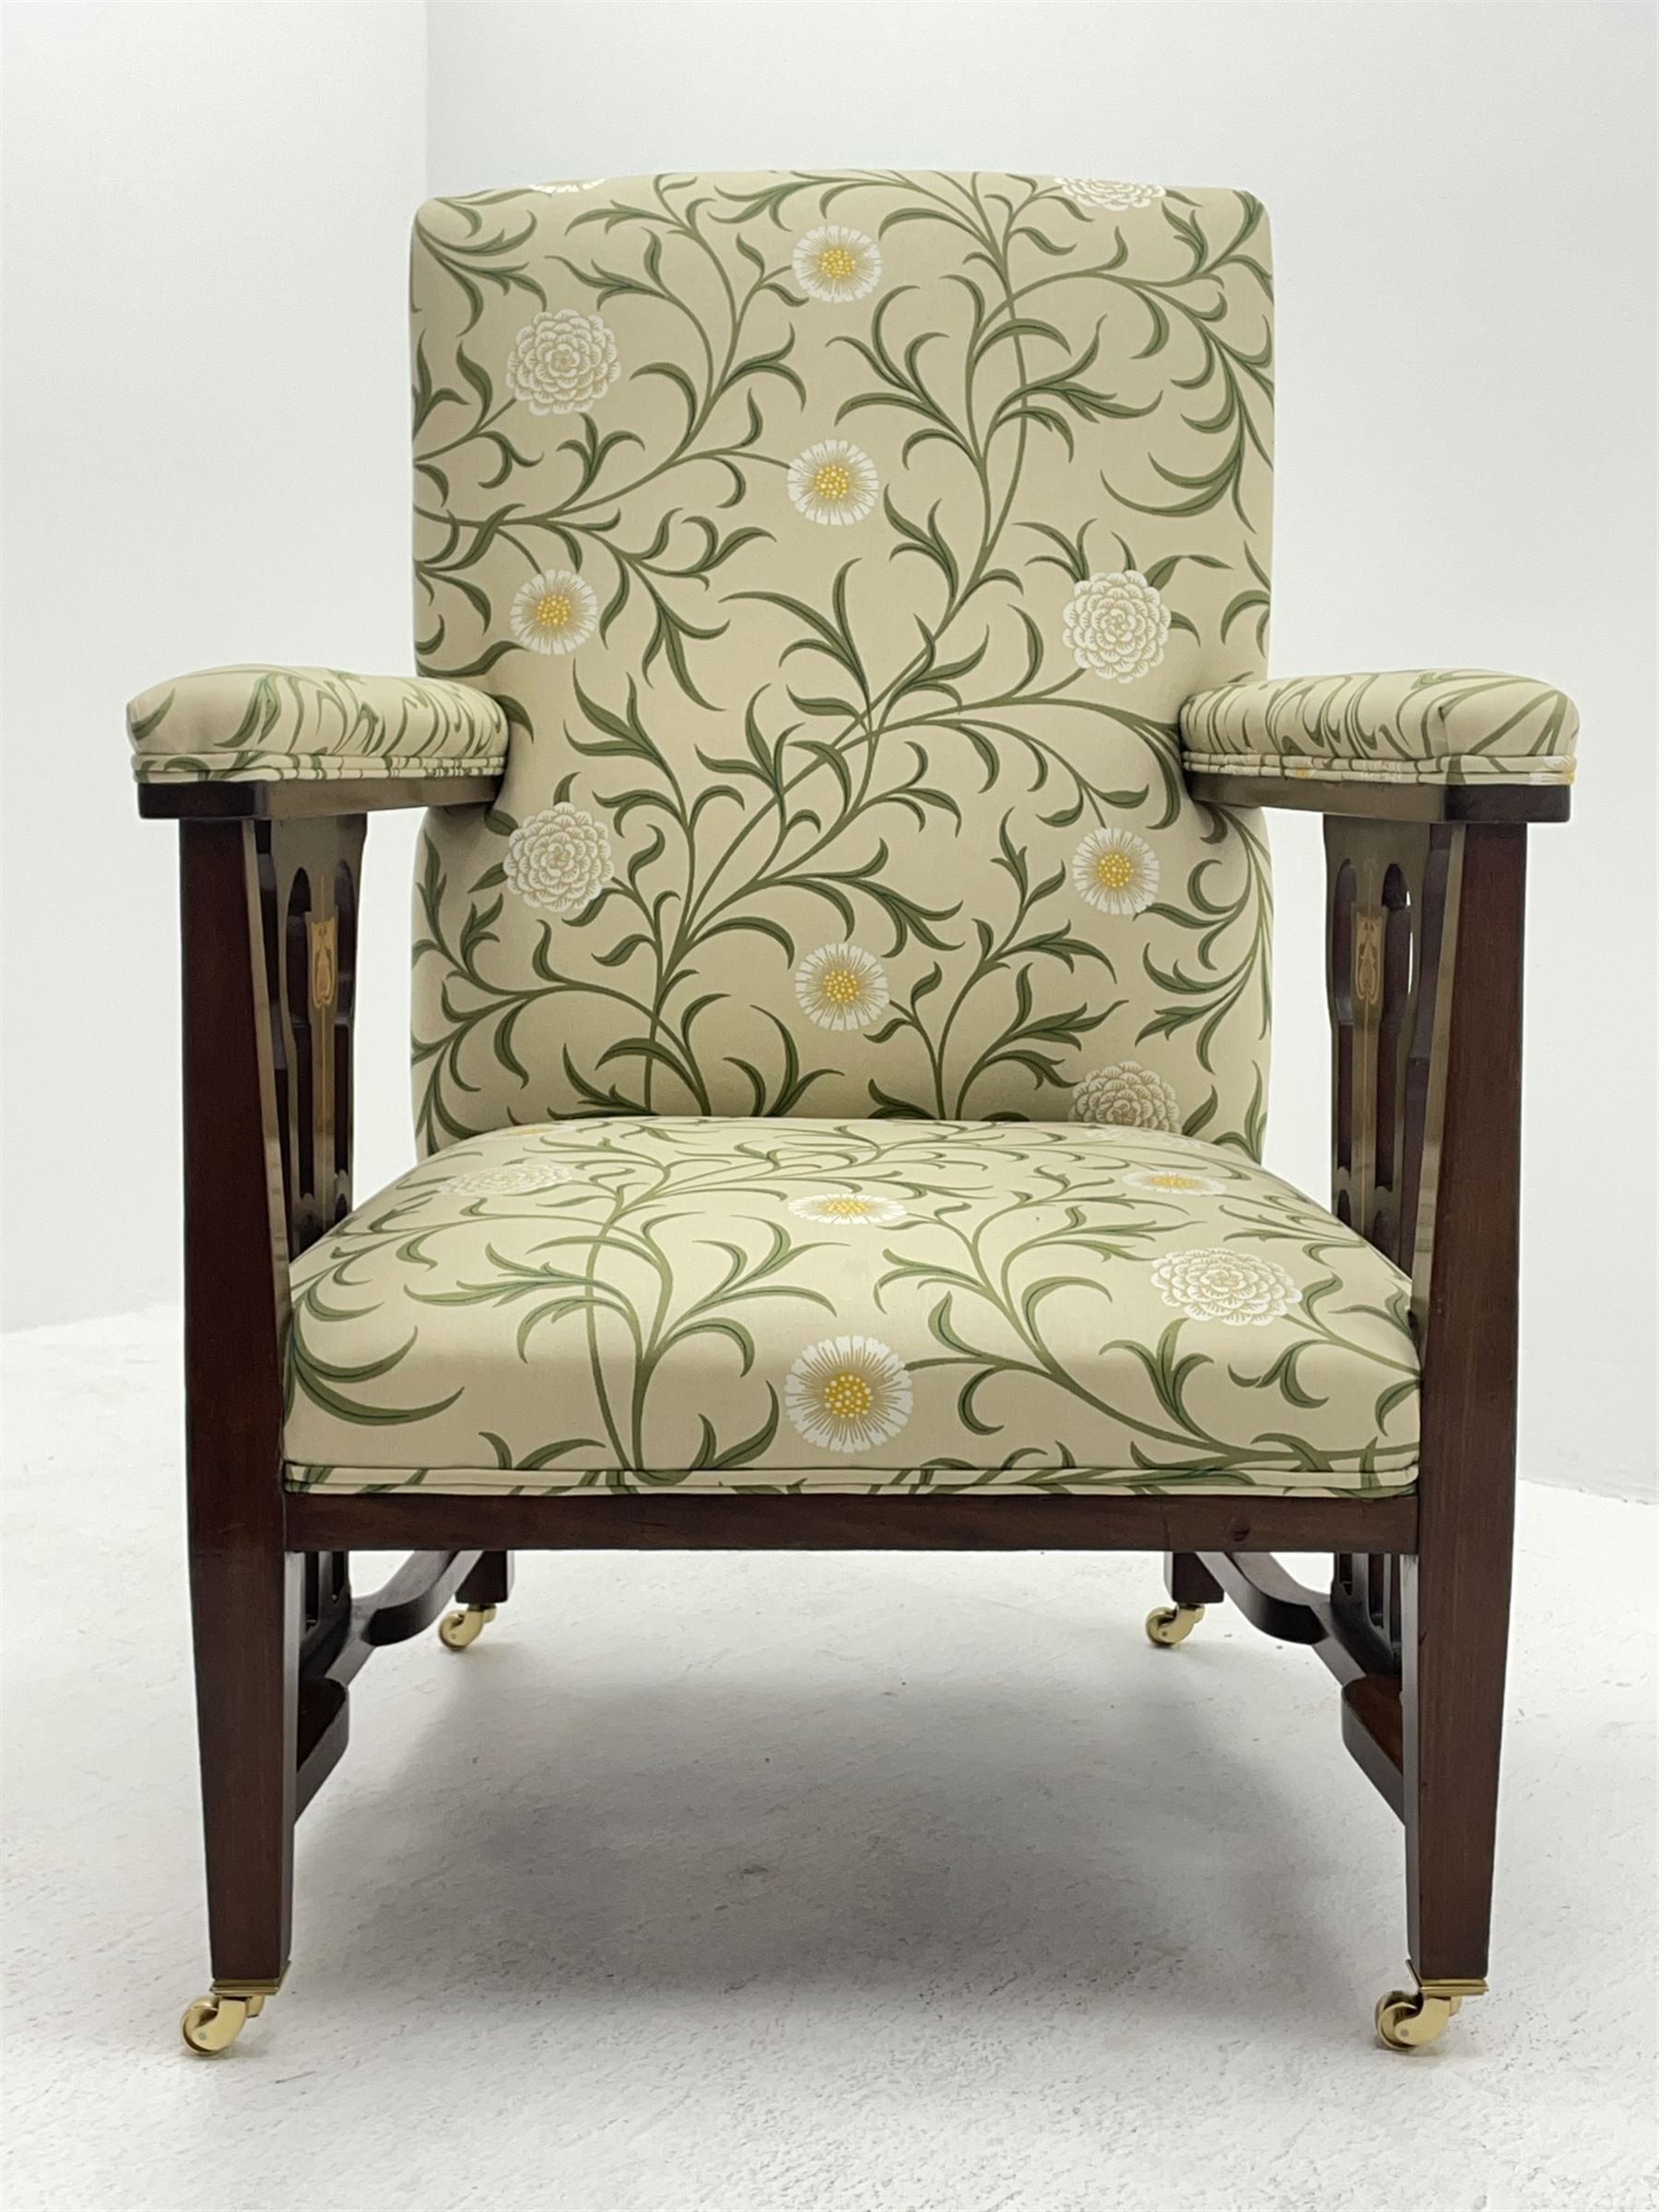 Late 19th century Arts and Crafts mahogany armchair - Image 3 of 7